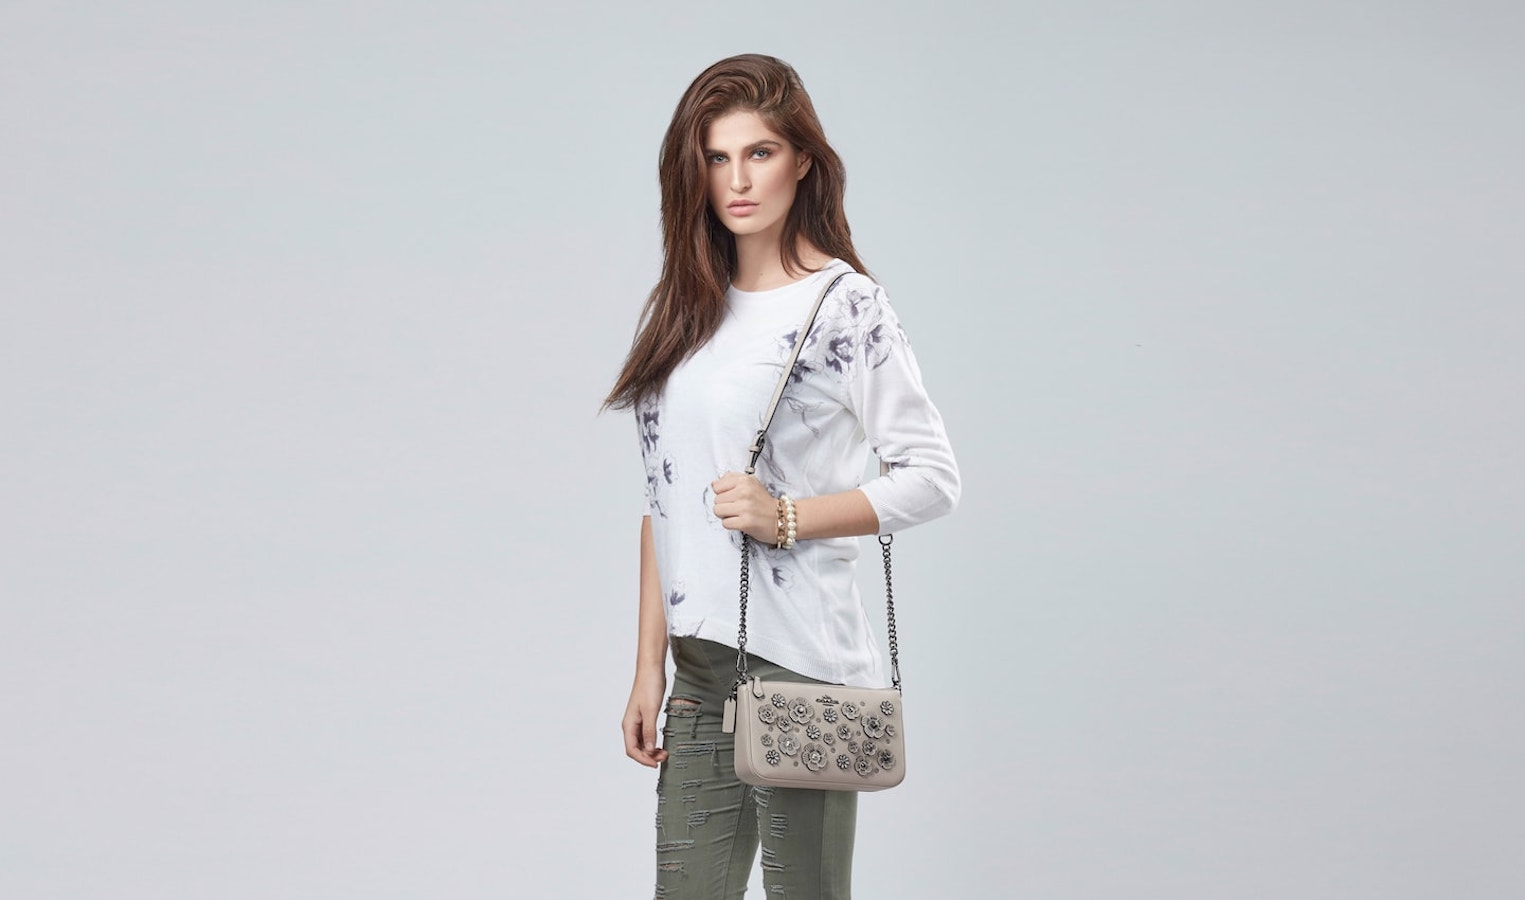 coach-willow-white-med-21-min-min